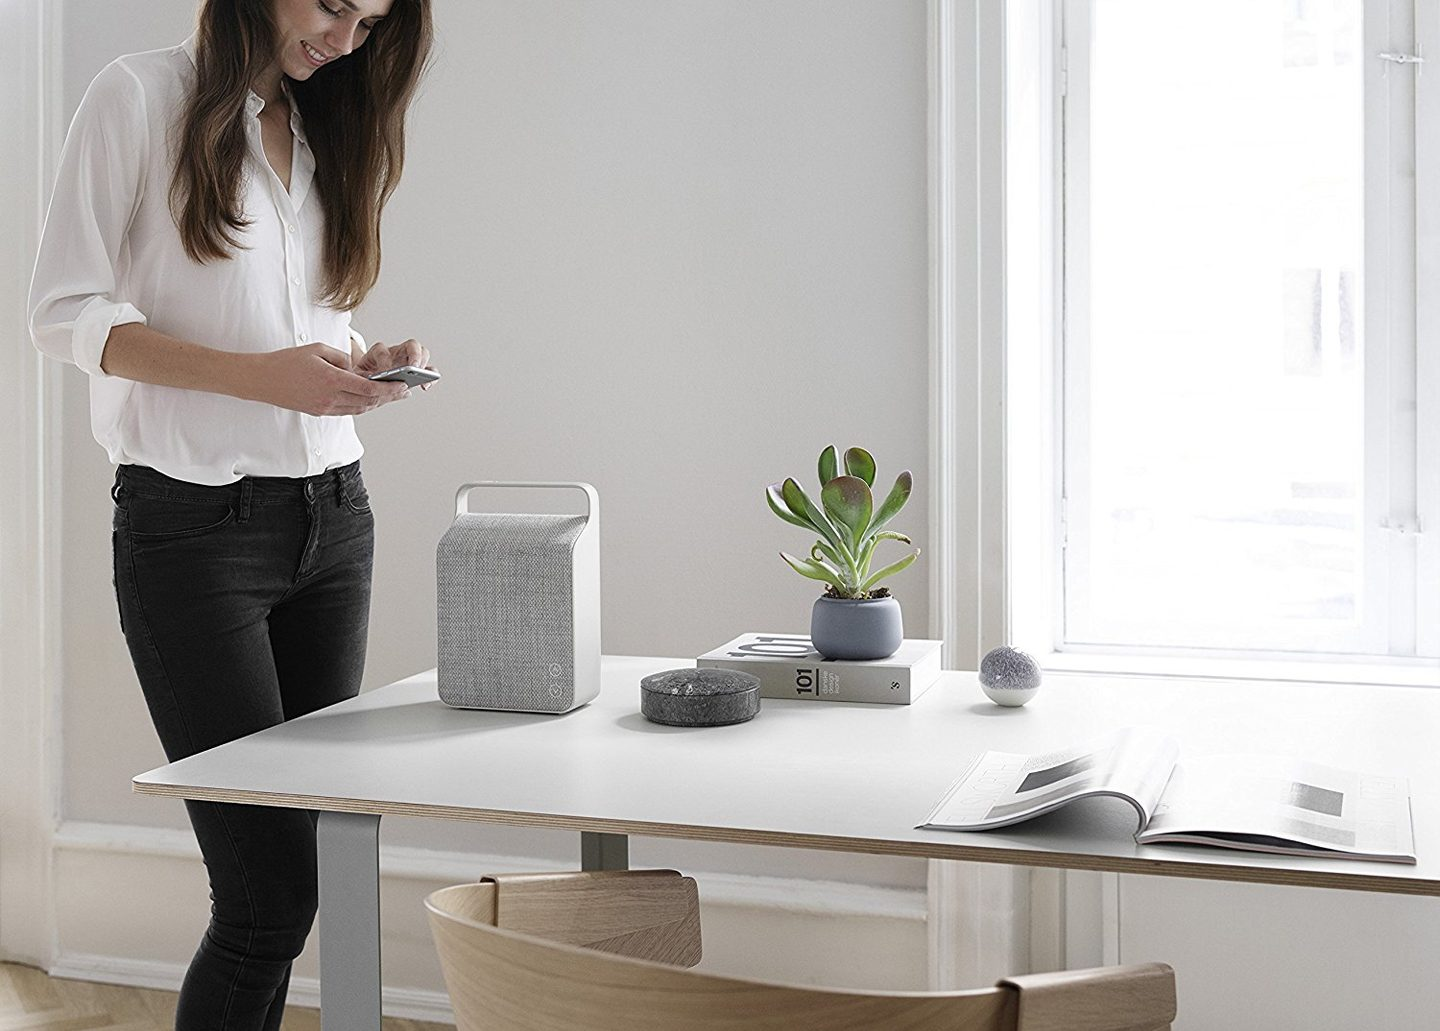 OSLO PORTABLE WIRELESS SPEAKER PEBBLE GREY